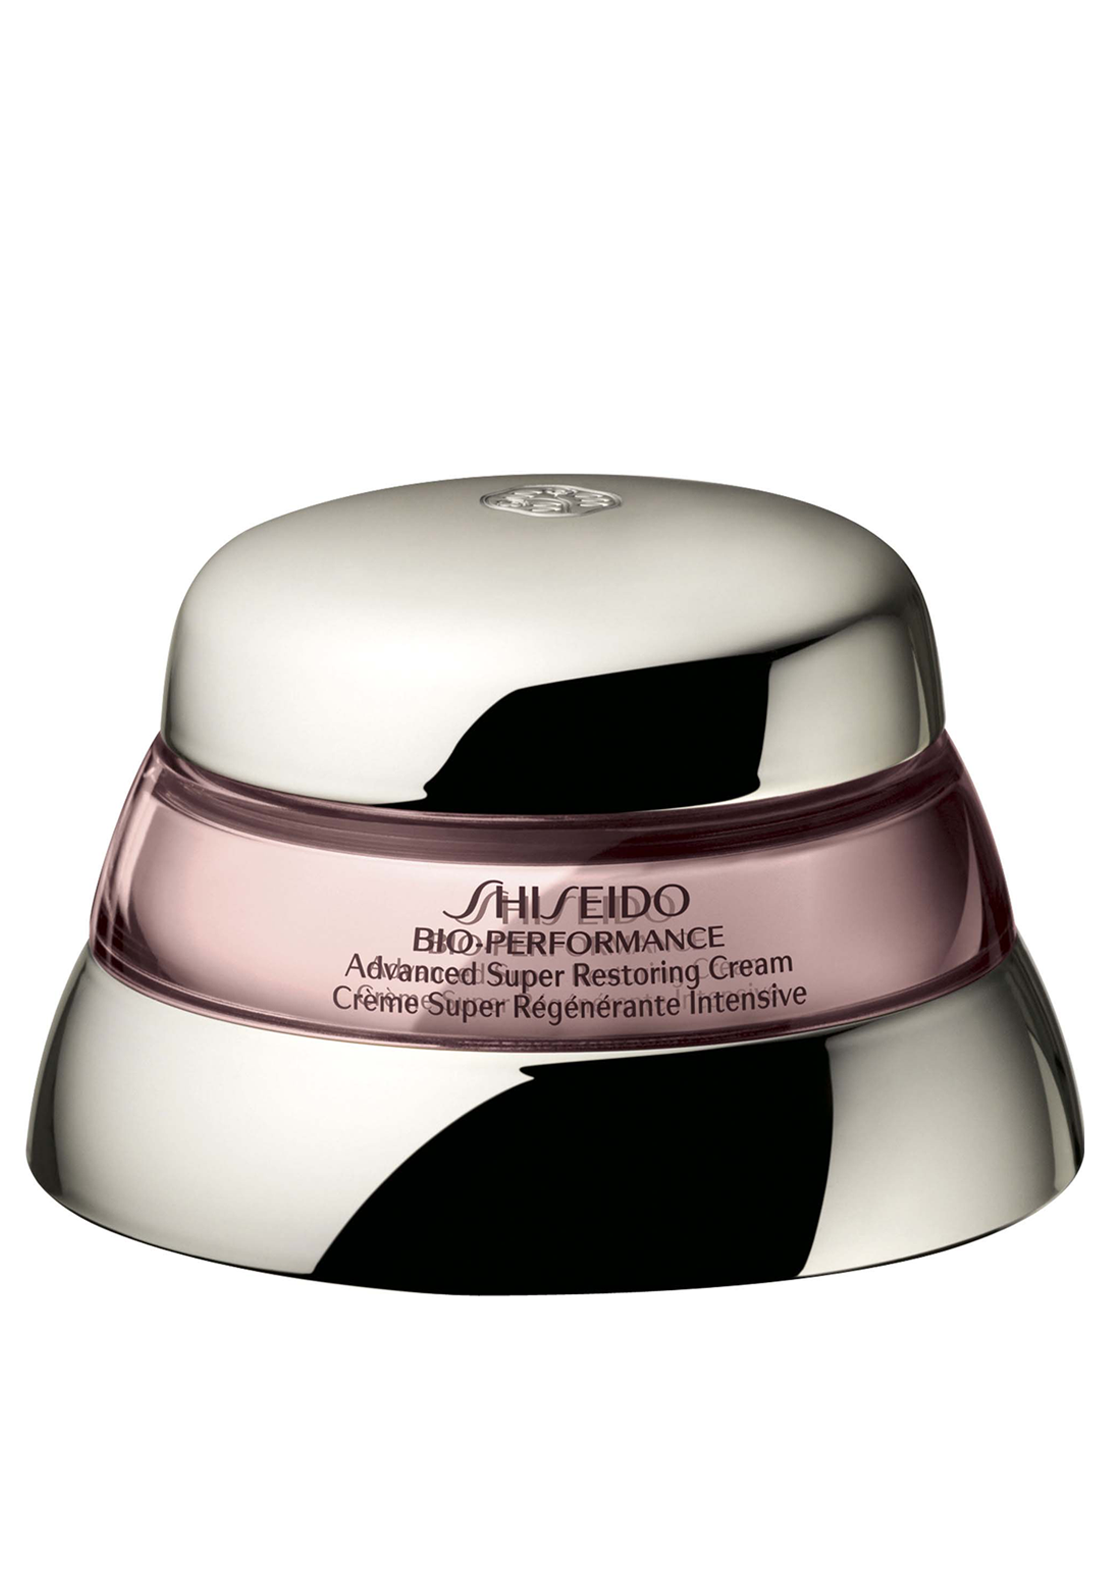 Shiseido Bio Performance Advanced Super Restoring Cream, 50ml